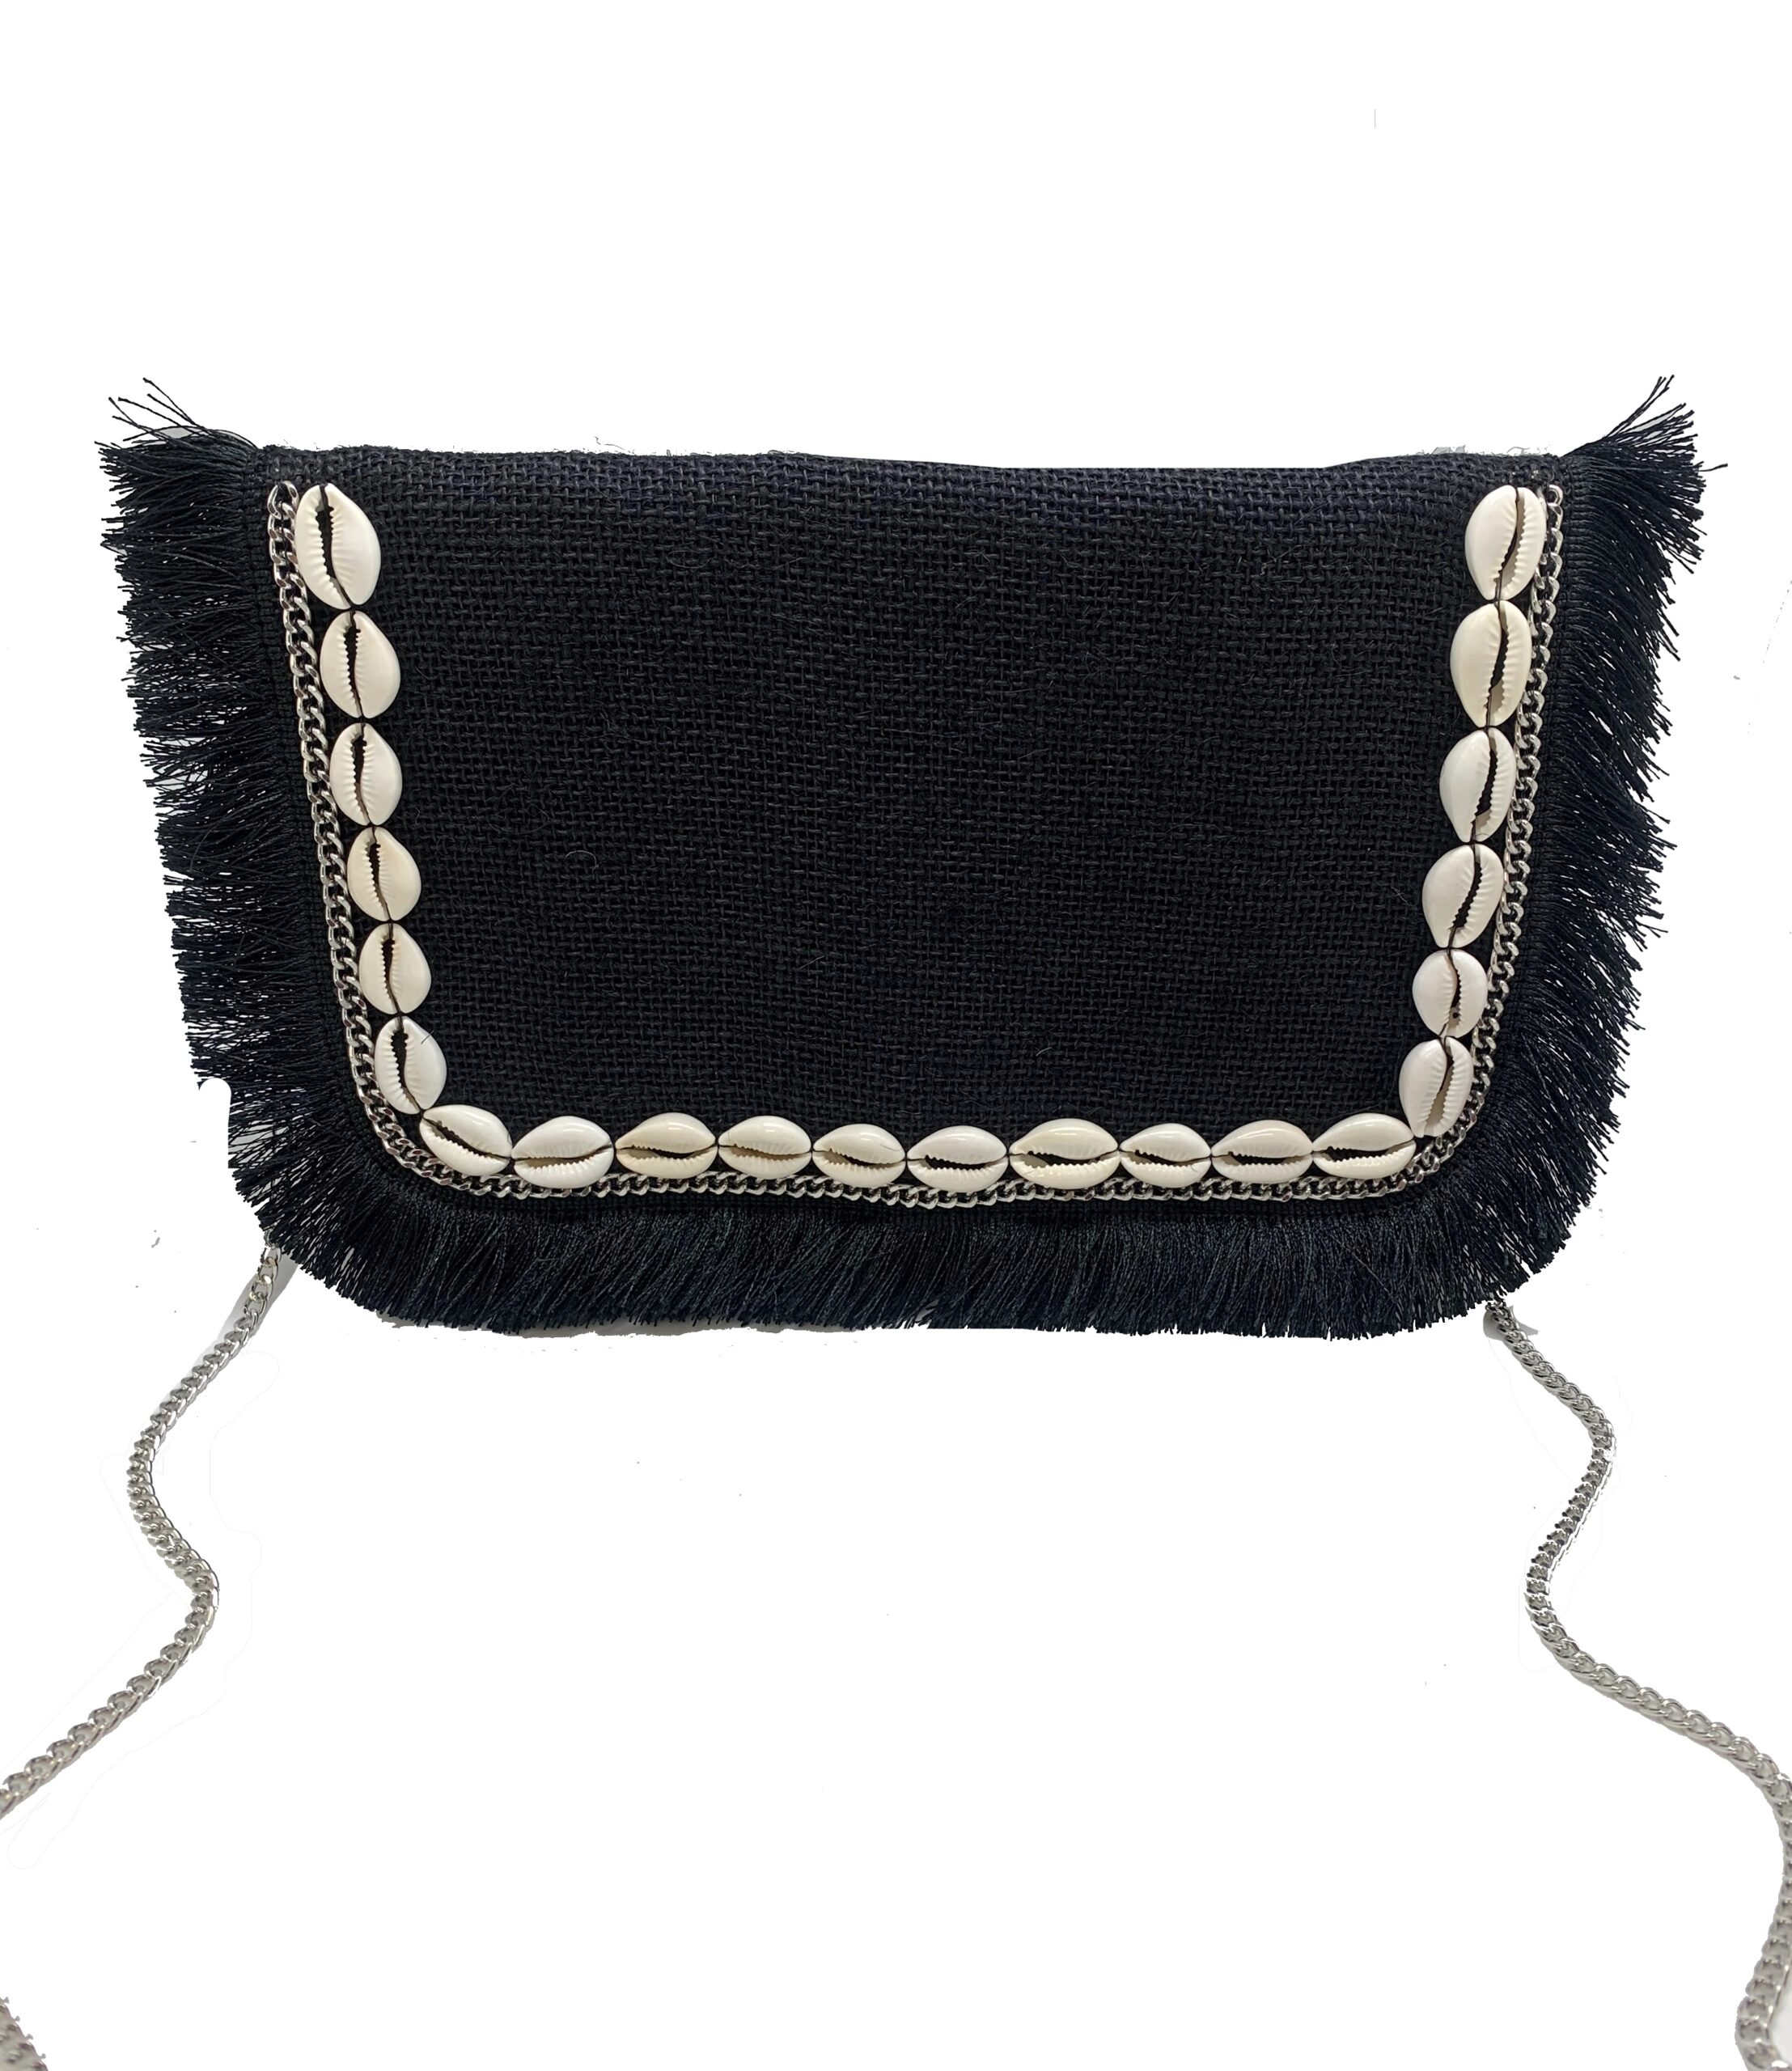 BLACK JUTE BAG WITH COWRIE SHELL AND FRINGE